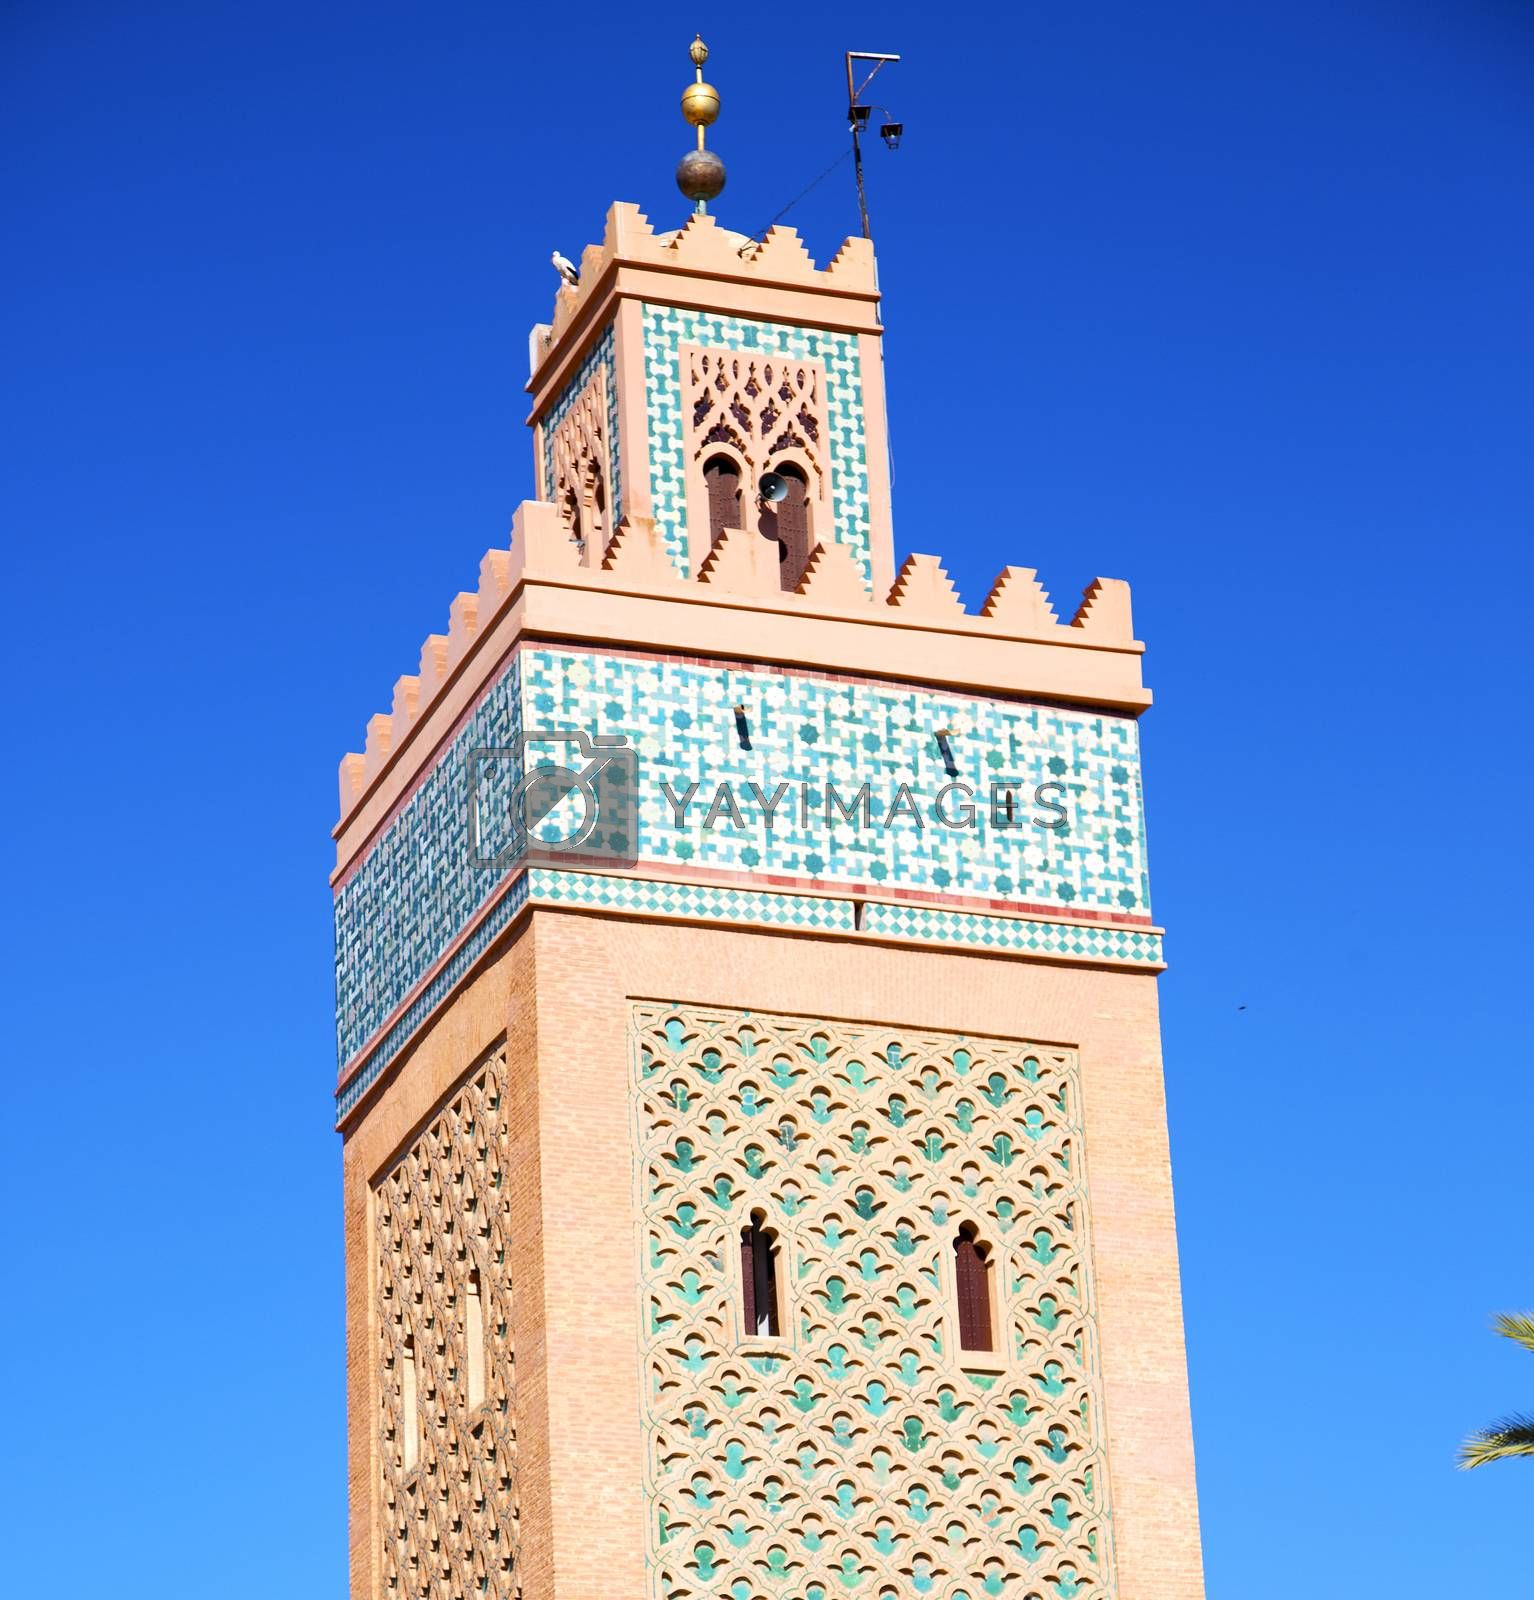 in maroc africa minaret and the blue    sky by lkpro